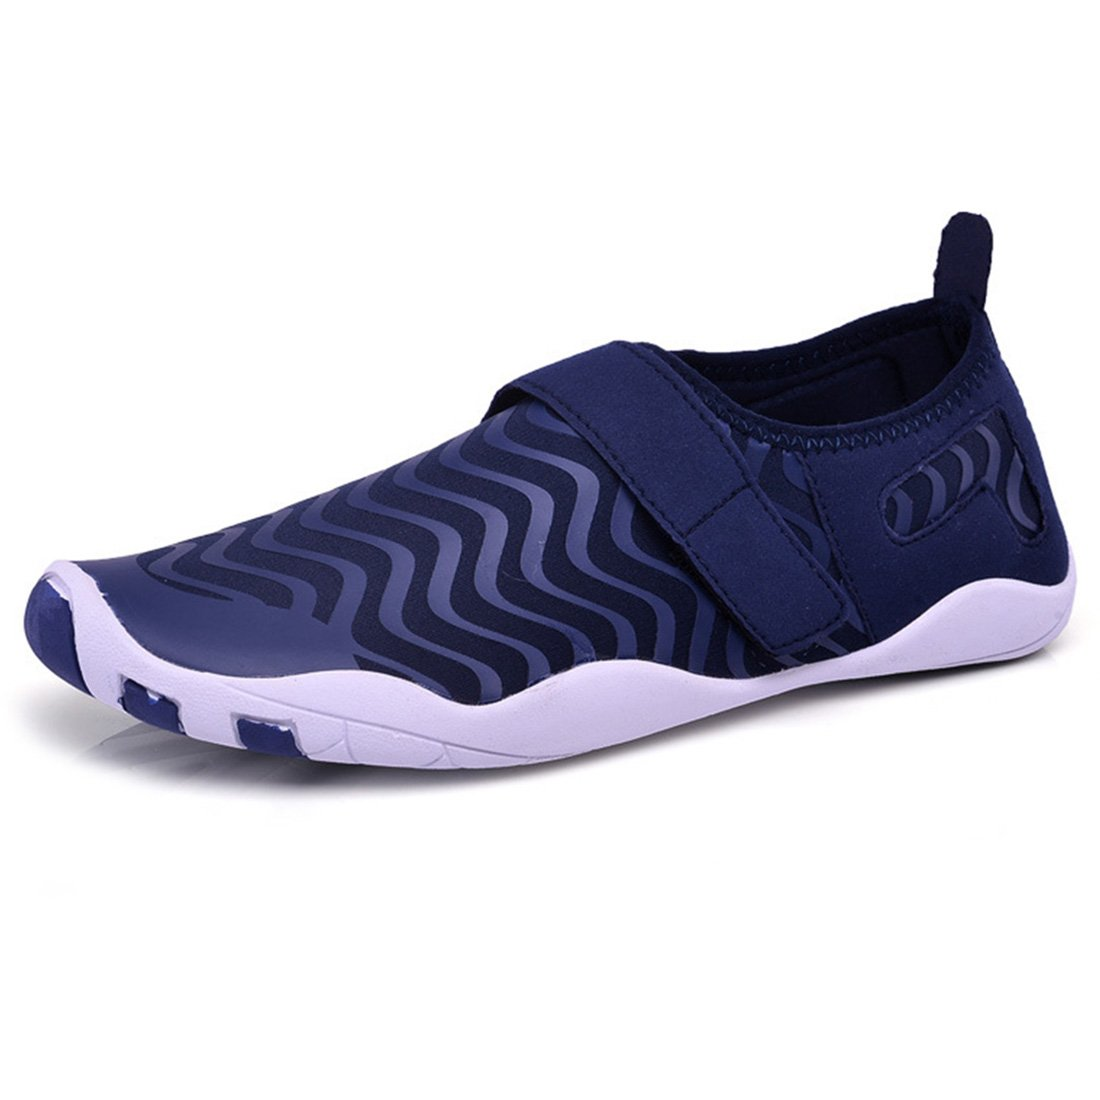 Water Shoes Quick Dry Aqua Shoes Barefoot Shoes for Water Sports Rubber Sole B07DMGQMGV EU Size 38(US Size Women 7)|Navy Blue